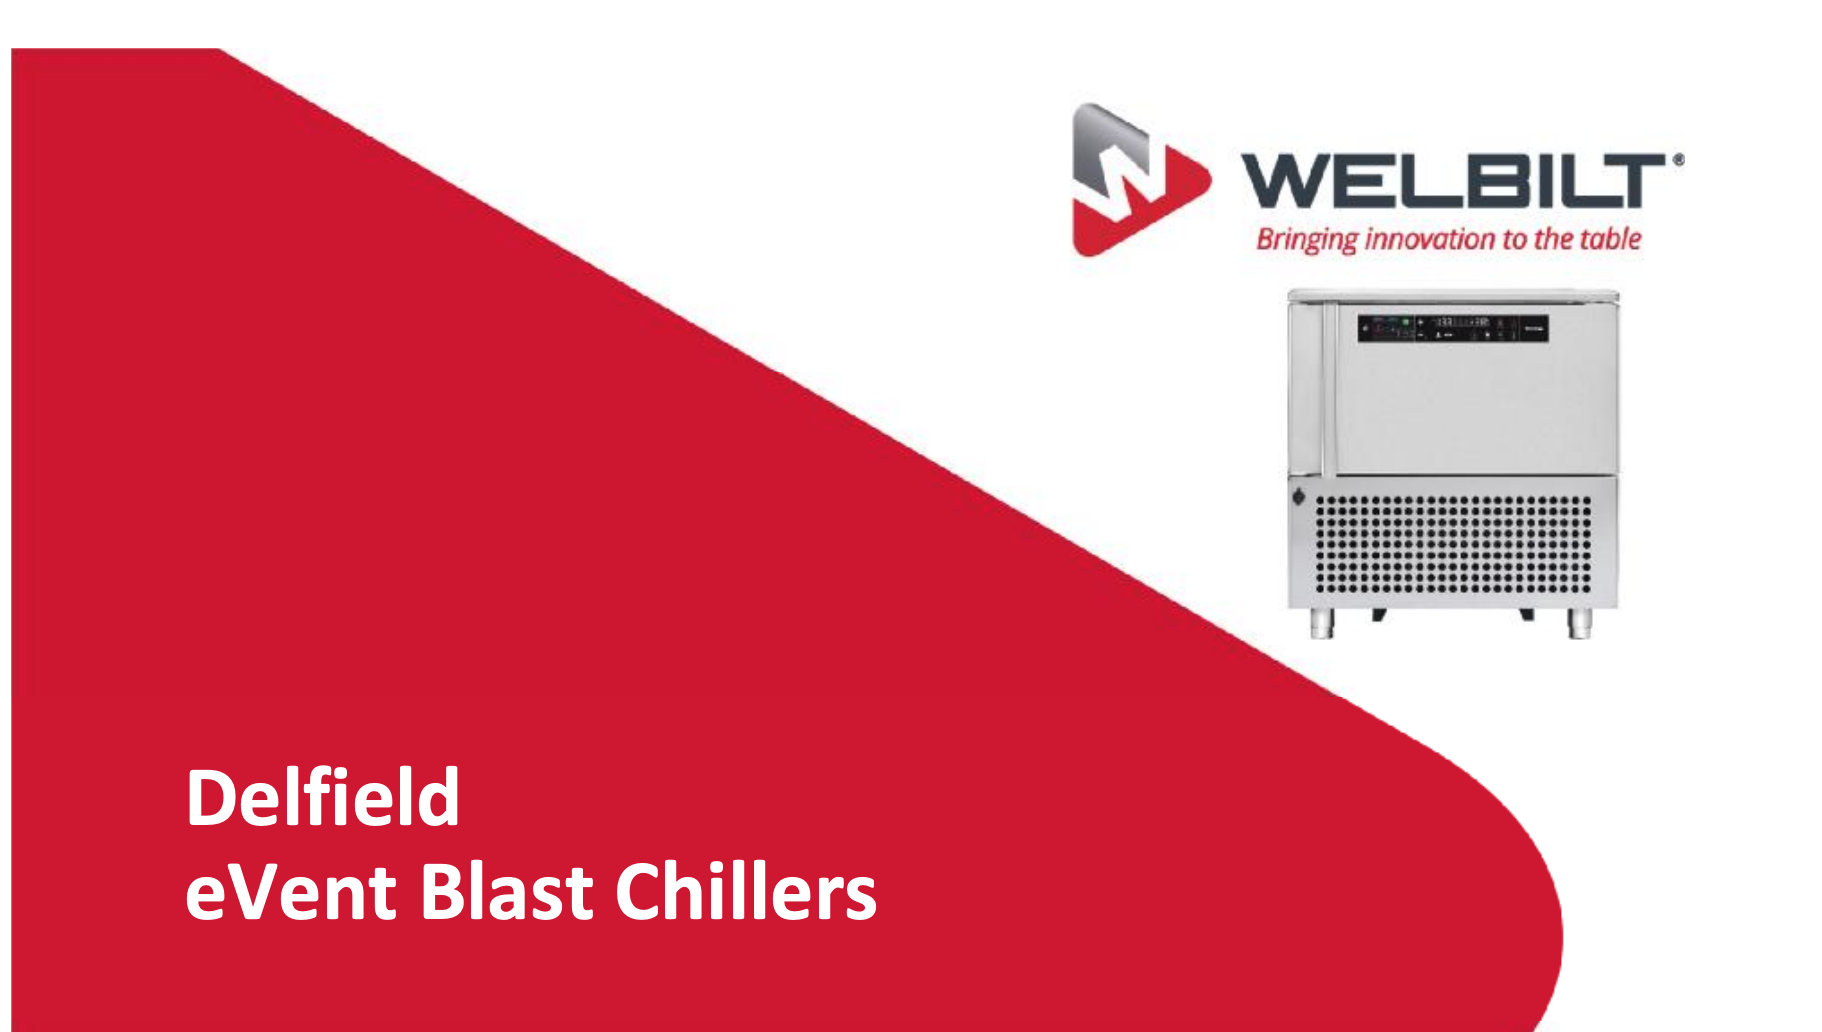 A Quick Look at the Benefits of Delfield Blast Chillers